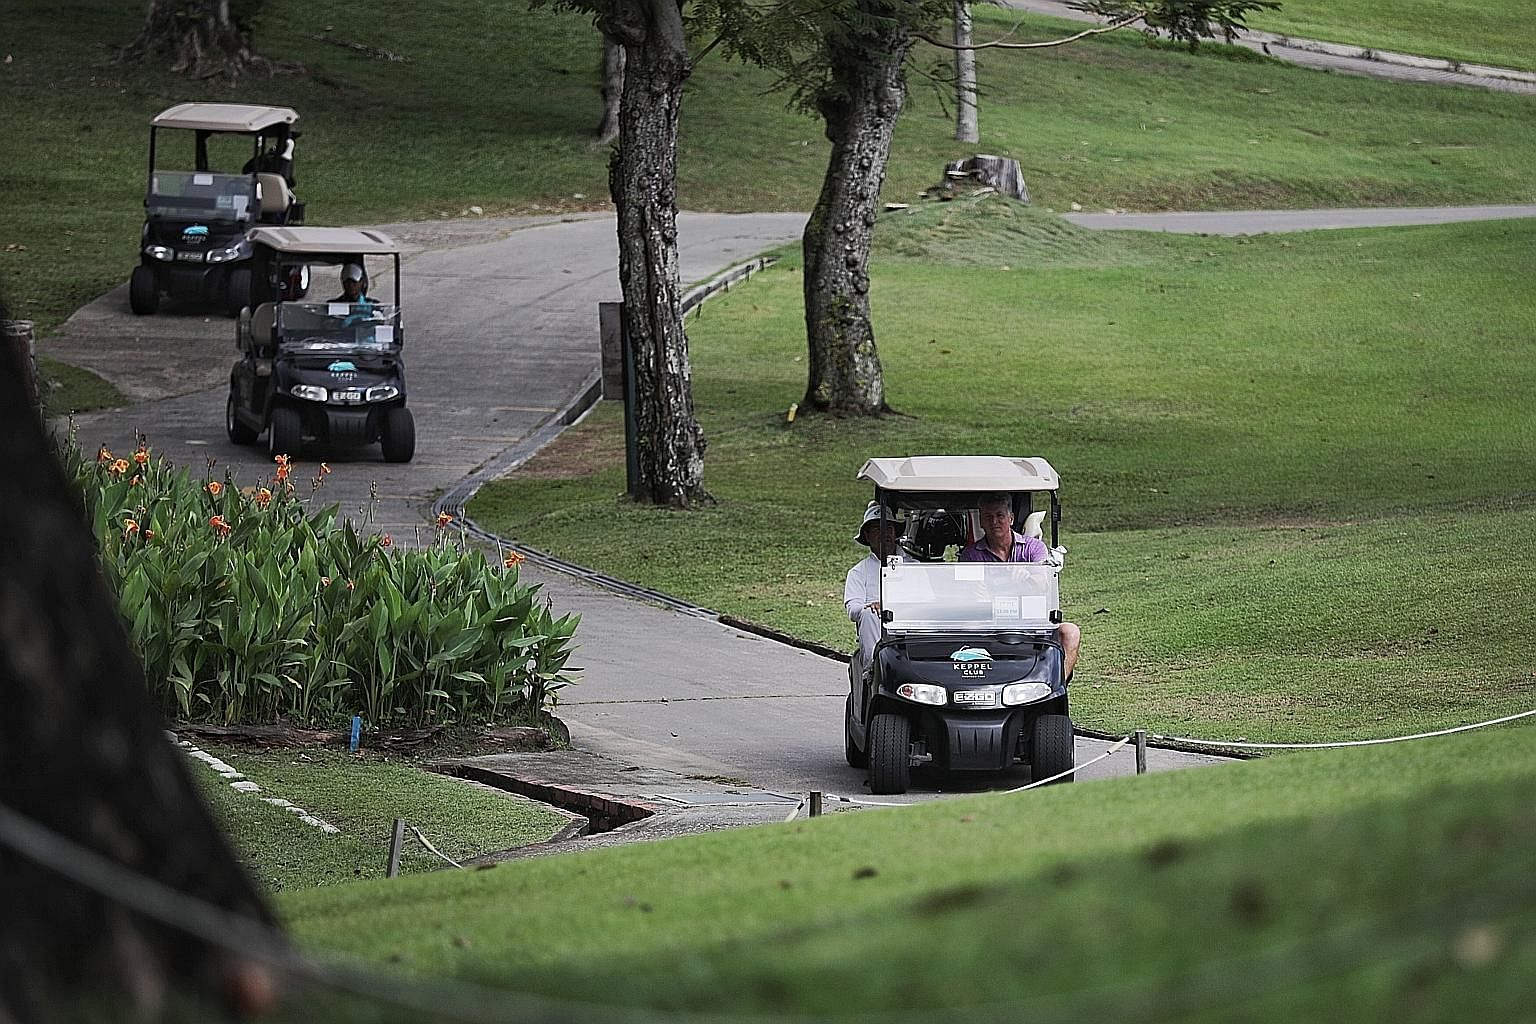 Clockwise from above: Golfers travelling in their buggies at the Keppel Club golf course while golf executive Muhammad Izan, 39, is taking the temperature of golfer Tan Hua Joo, 49. Buggies at Orchid Country Club has a plastic divider between the sea